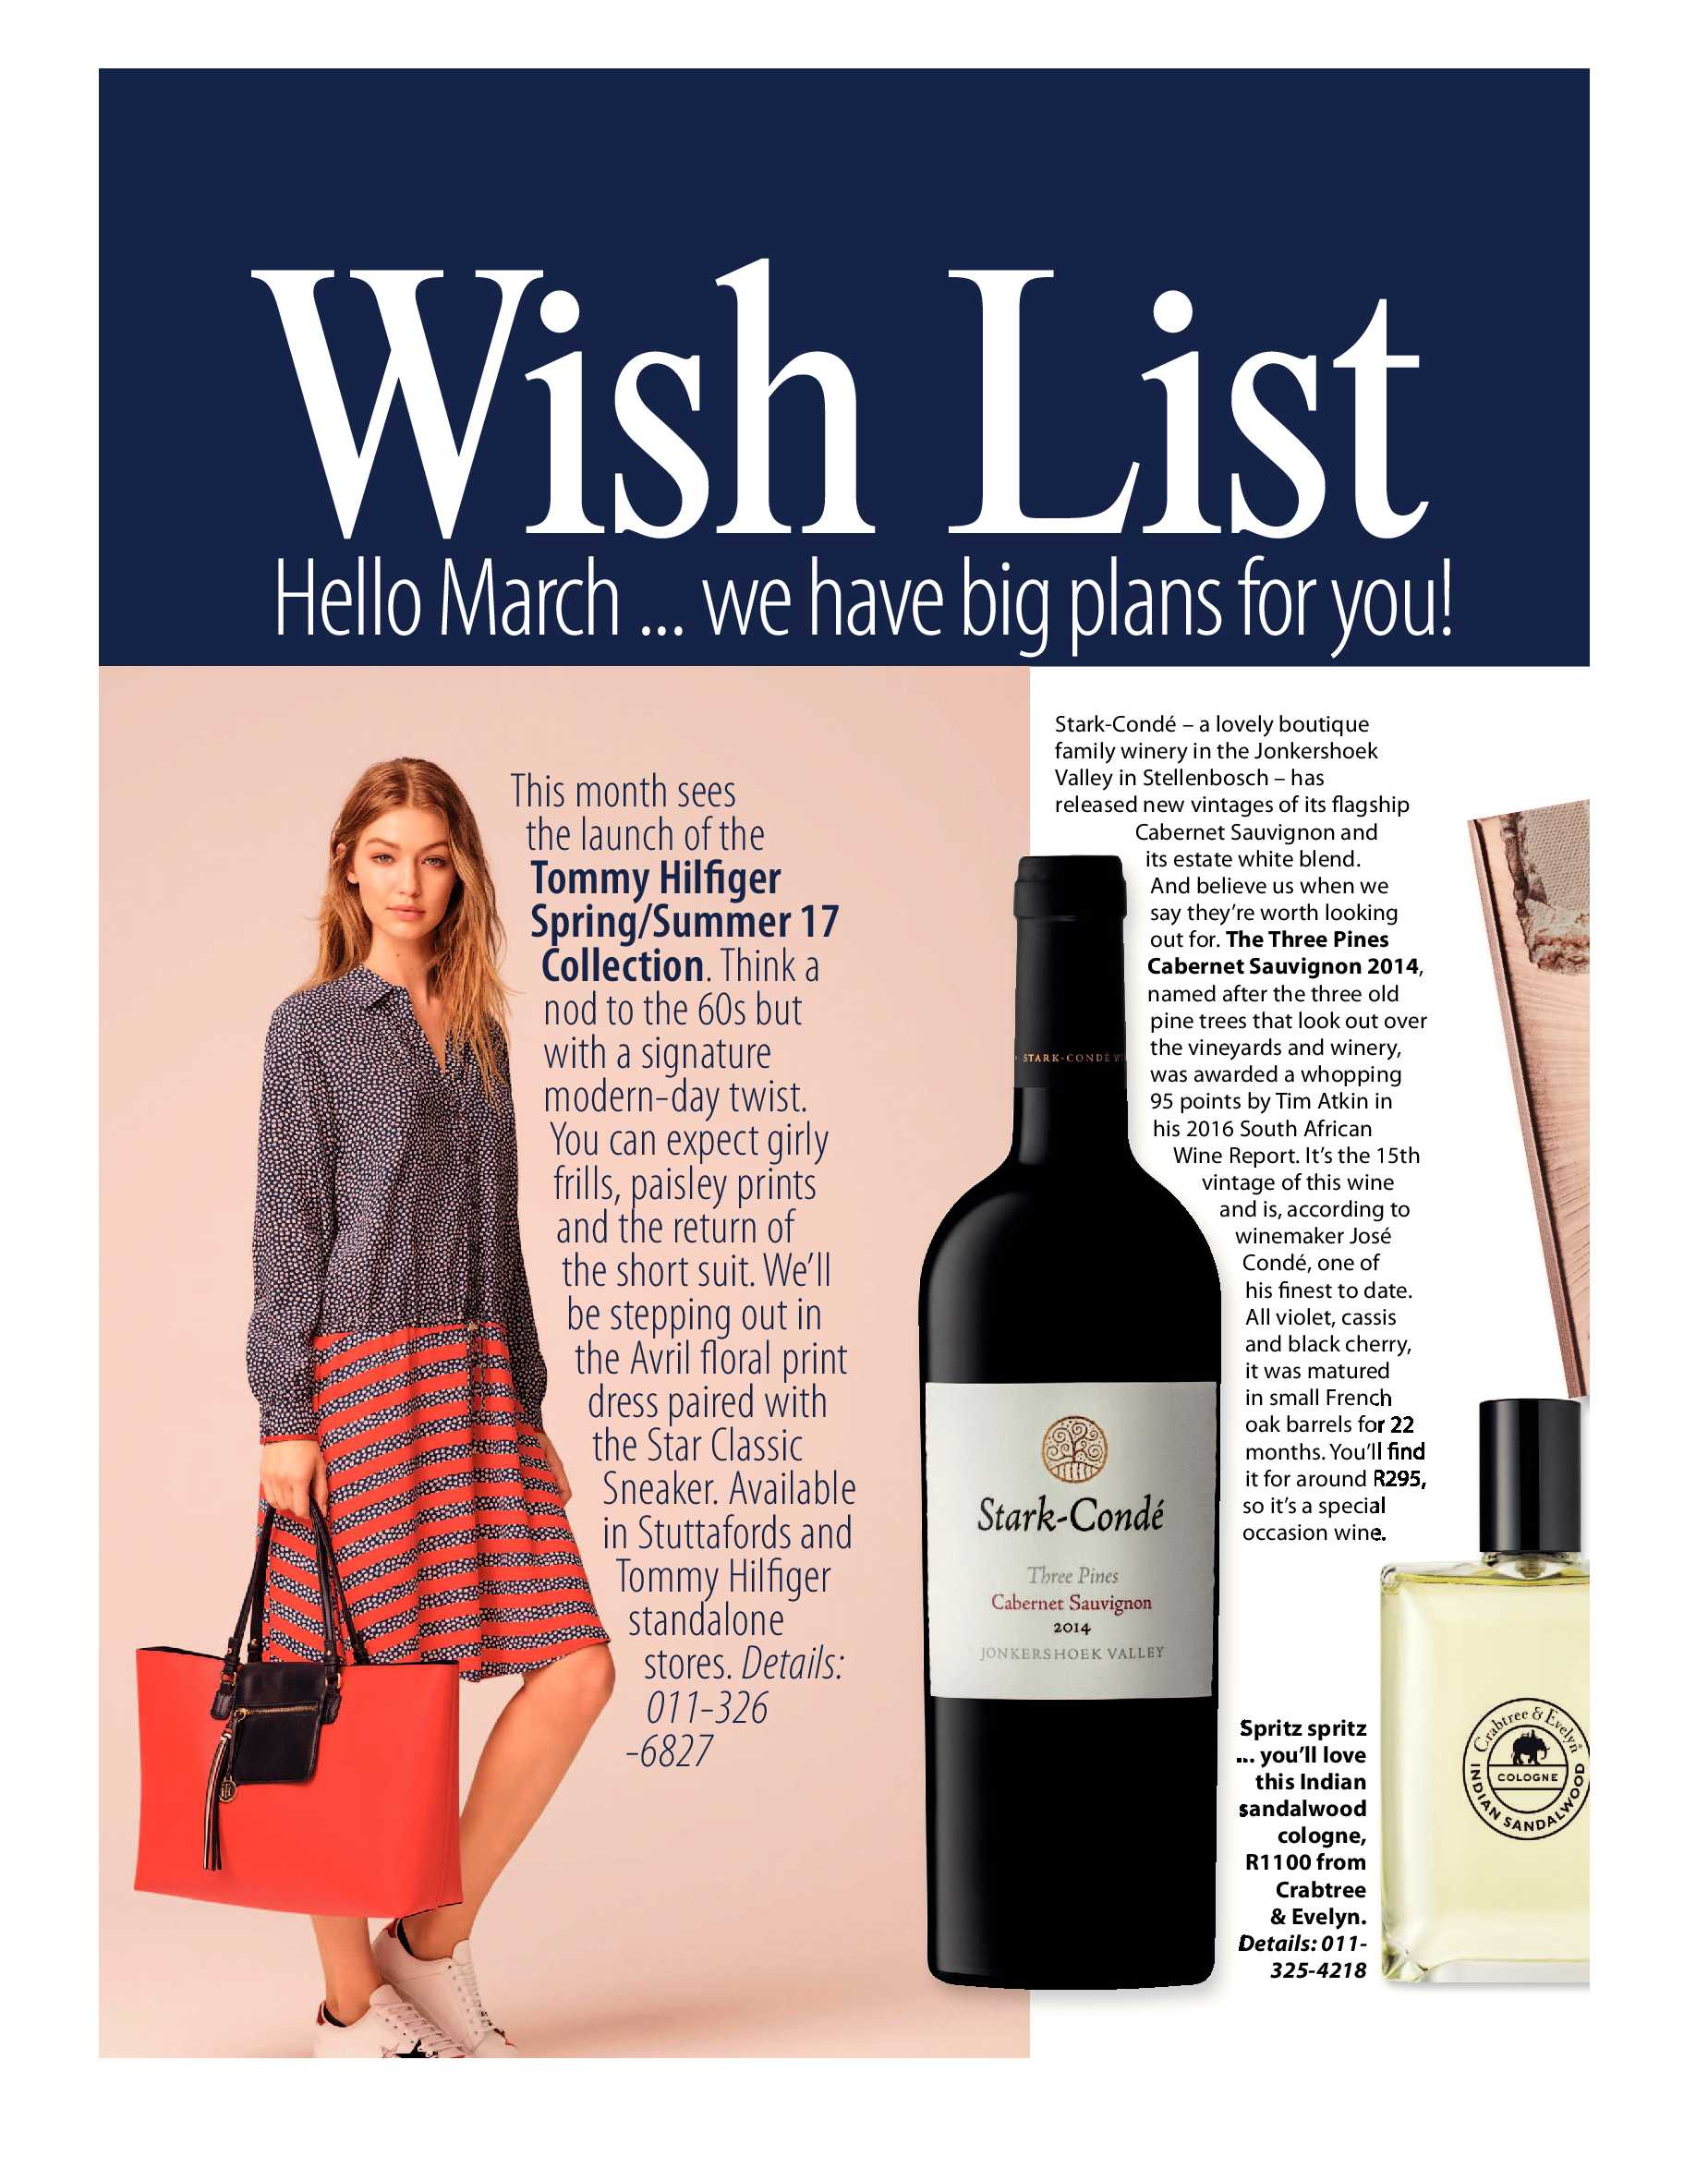 get-joburg-north-march-2017-3-epapers-page-8